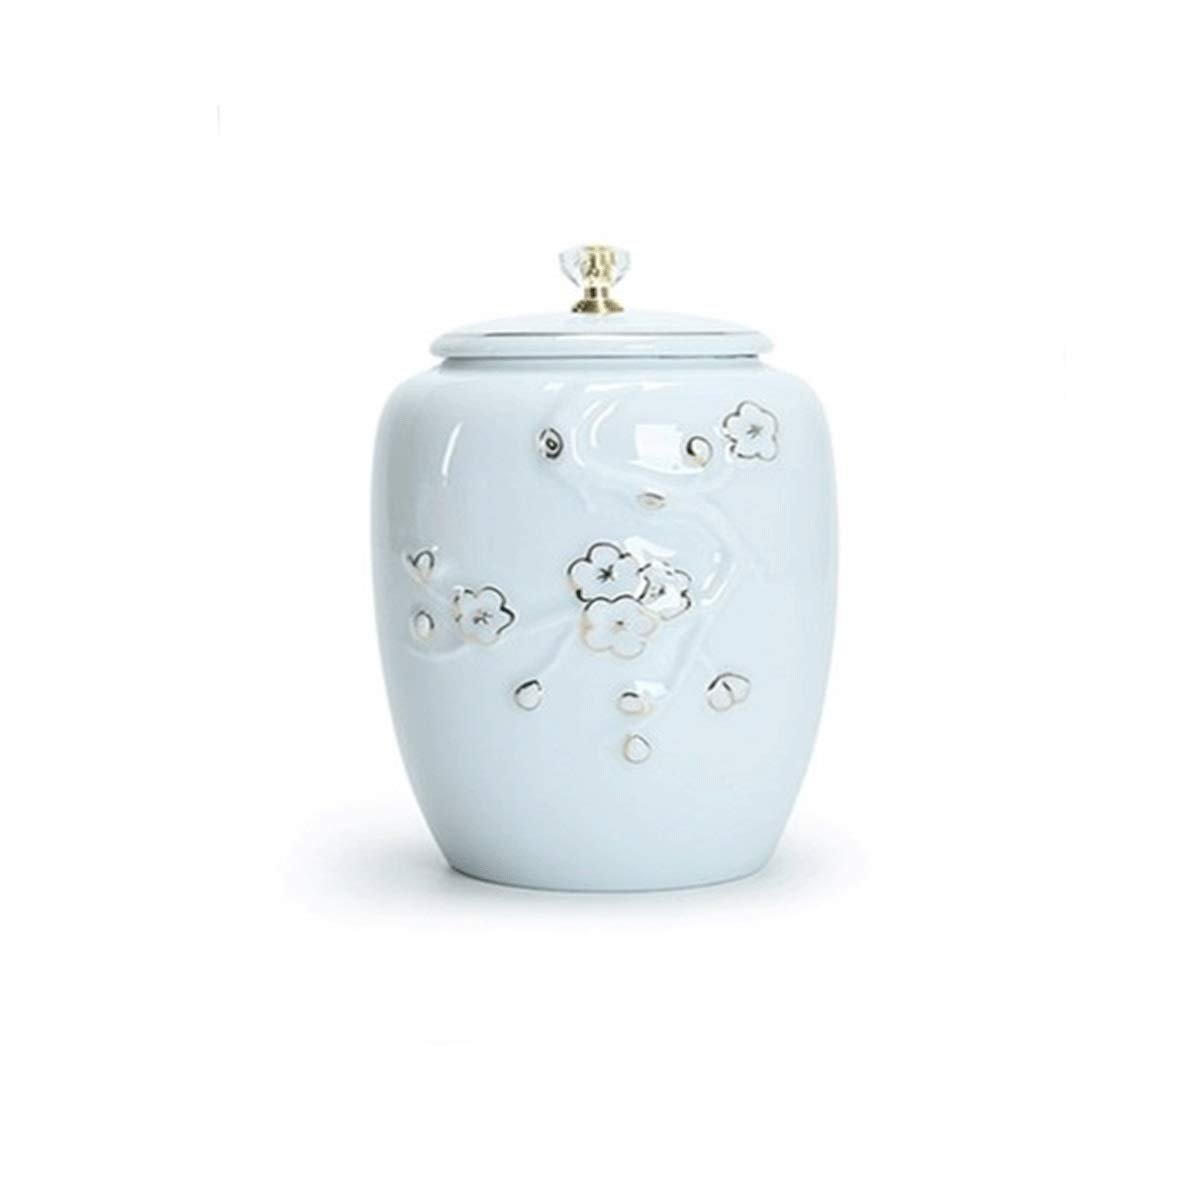 Fu word style Pet Casket, Cremation, golden Retriever Dog Large Dog Rabbit Death Supplies, Funeral Home Urn Jar, Ceramic, Pet Supplies (Style   Tree Branch Style)